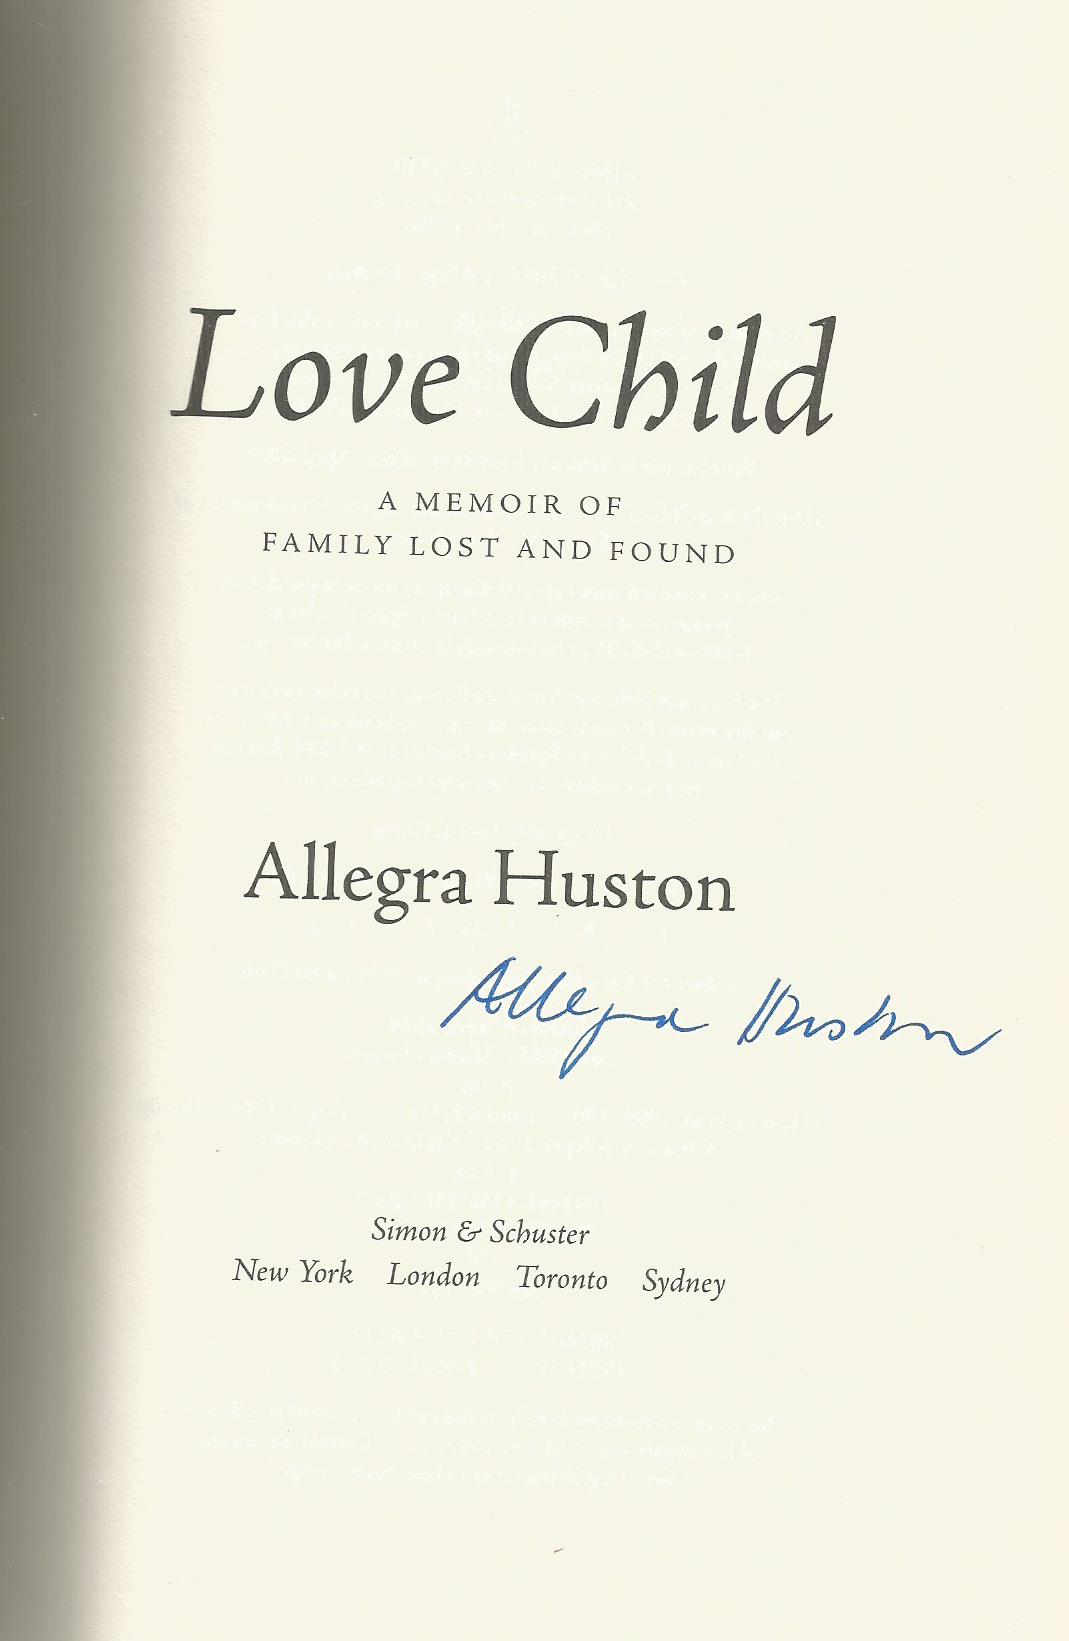 Allegra Huston